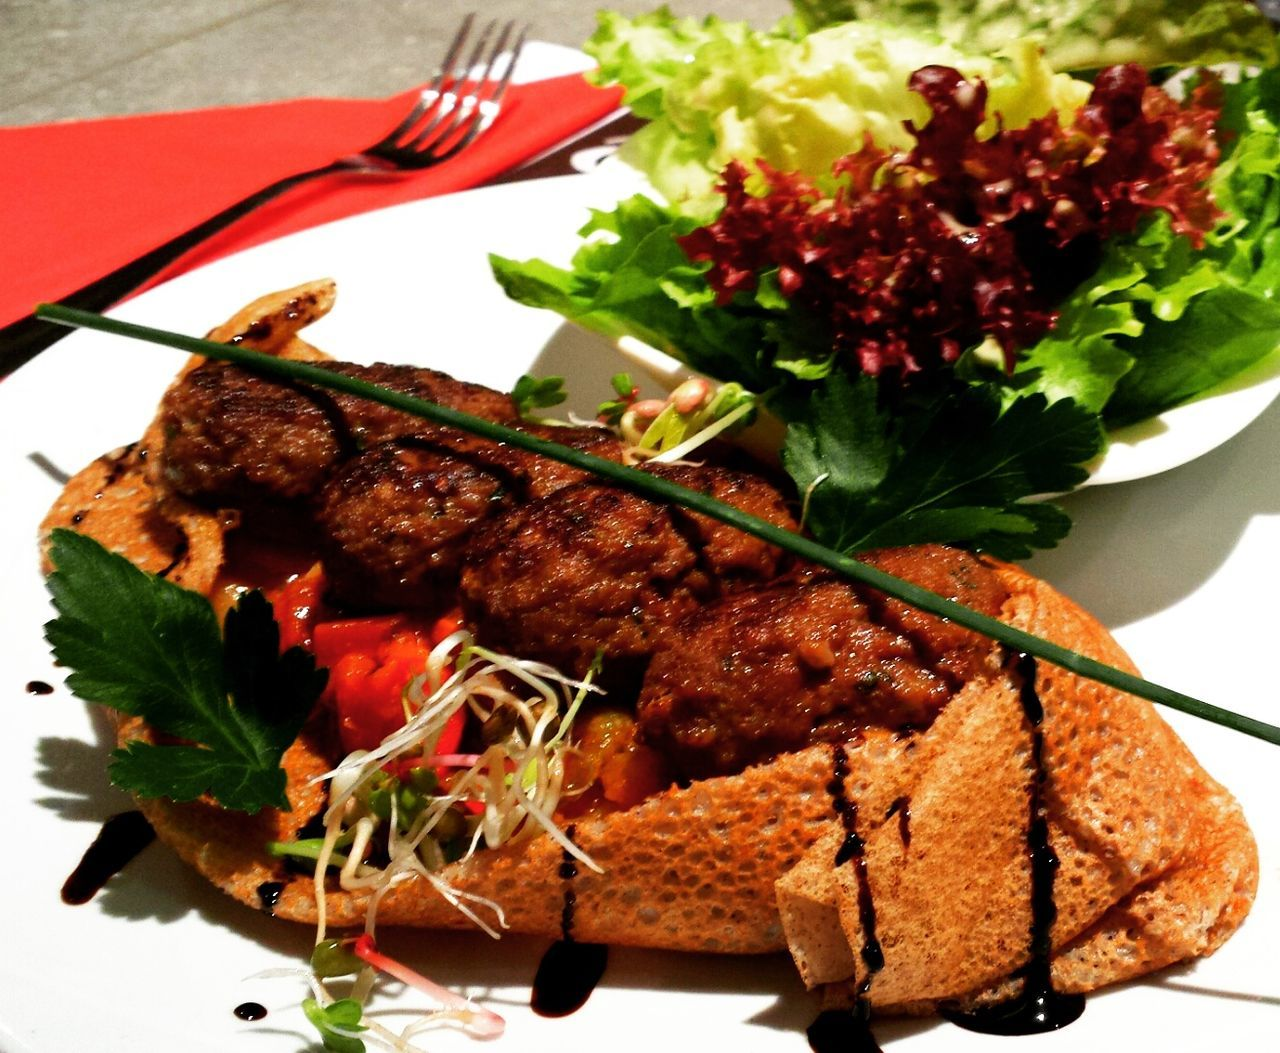 Food Food And Drink Day Cheatday Fitness Fitness Training Cuisine Cuisine_captures Cooking French Colmar, Alsace, France